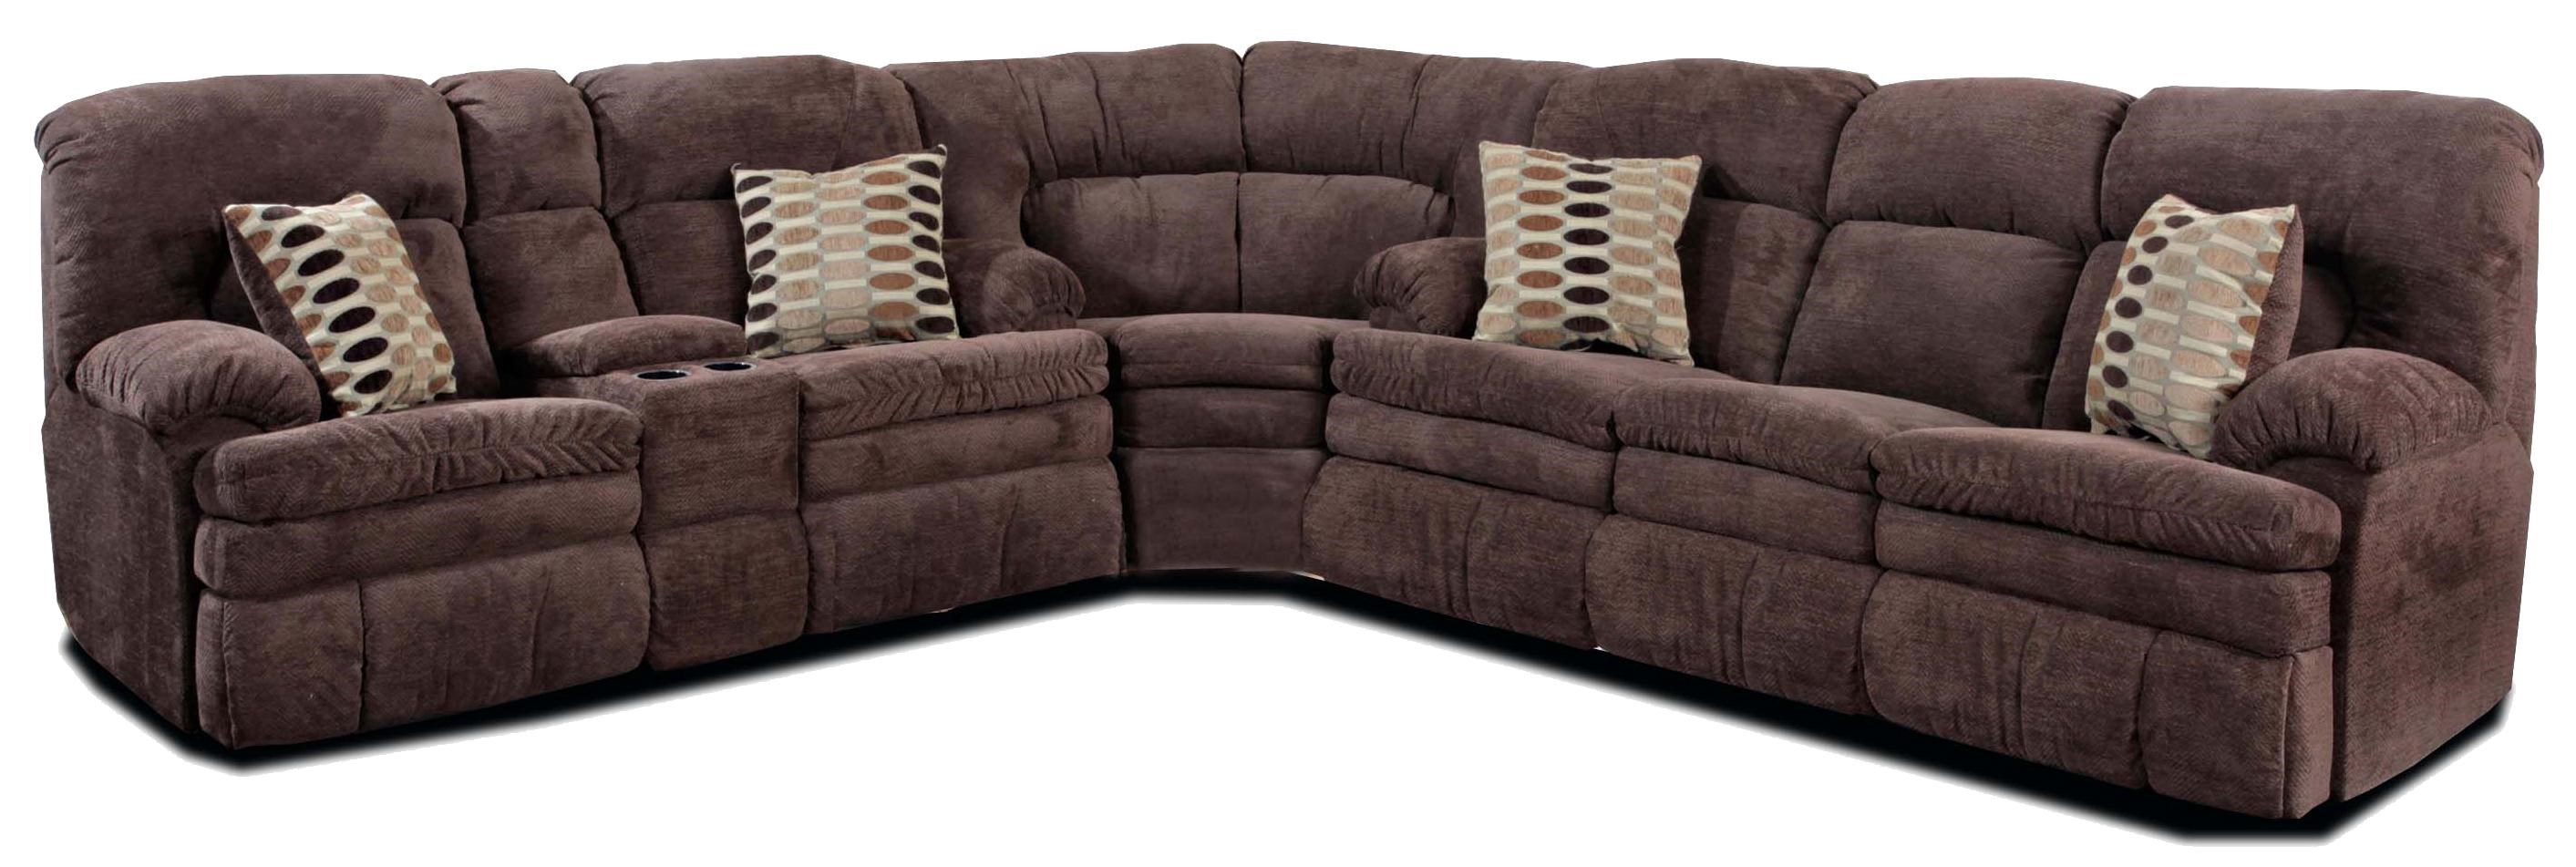 Recliner sectional southern motion avalon sectional space for 2 arm pressback chaise